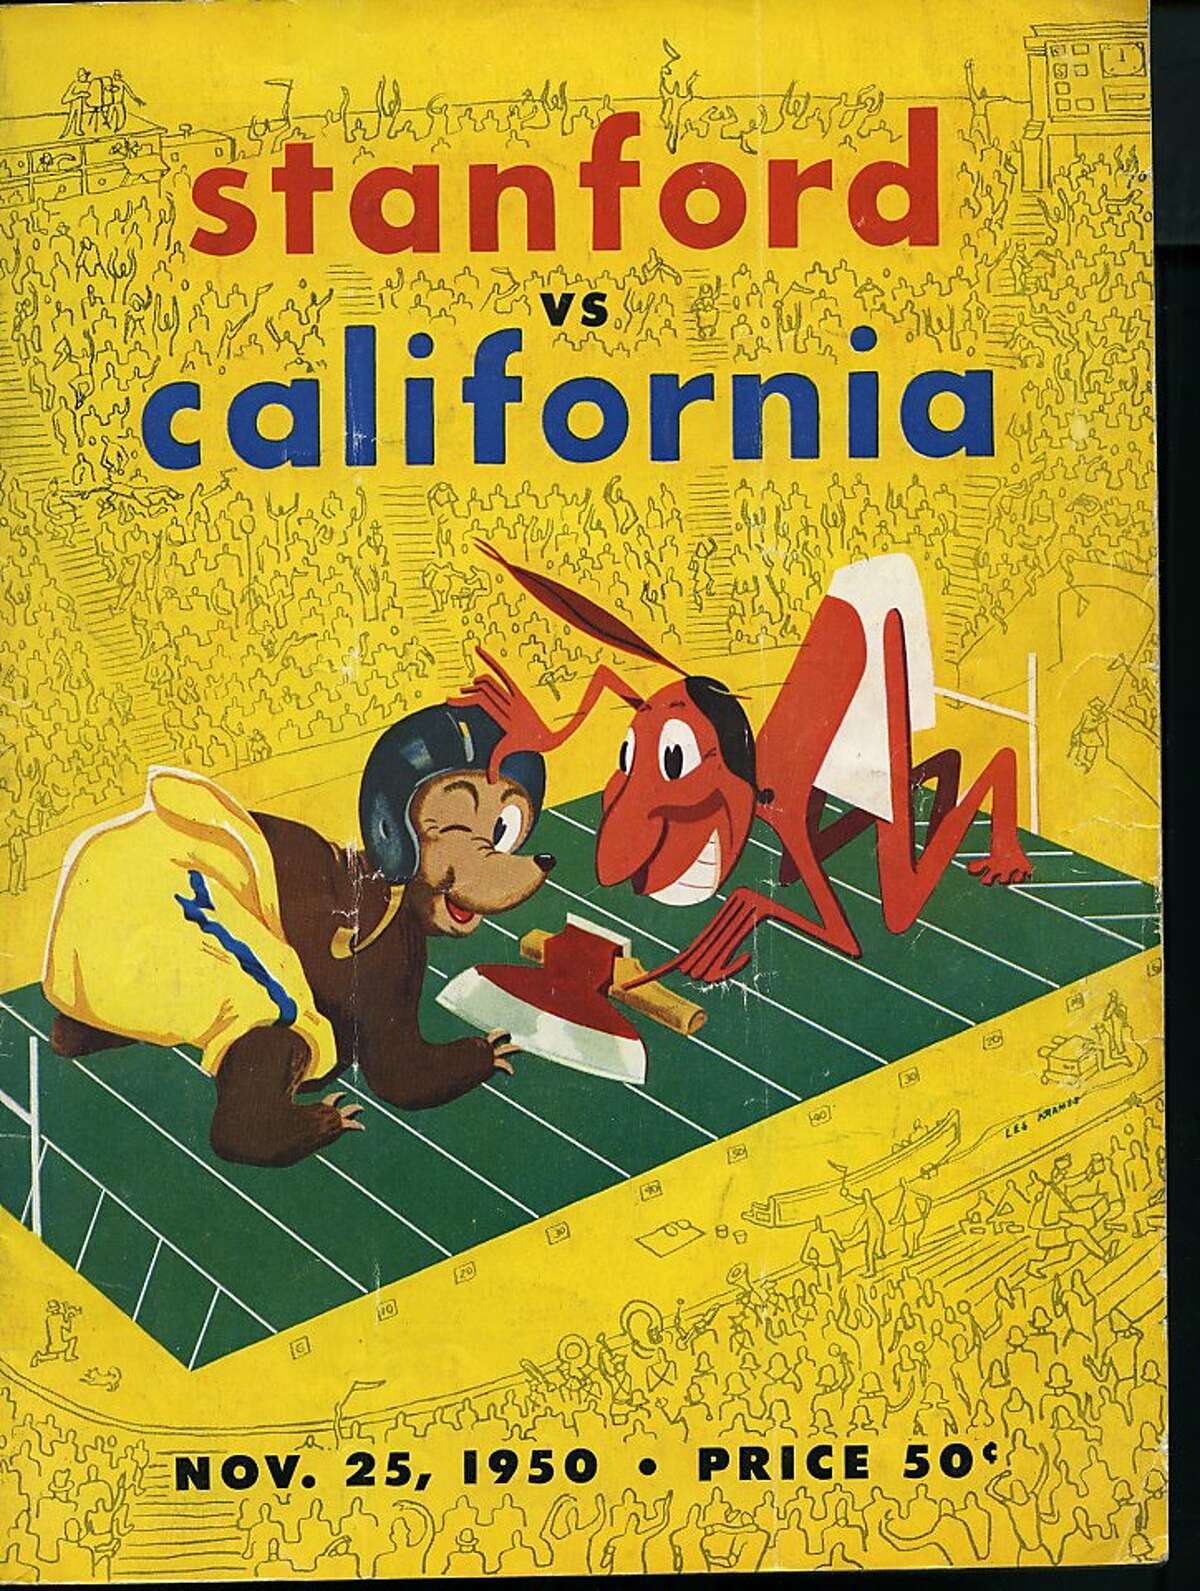 Stanford vs Cal Big Game official game program 1950 courtesy Don Figone